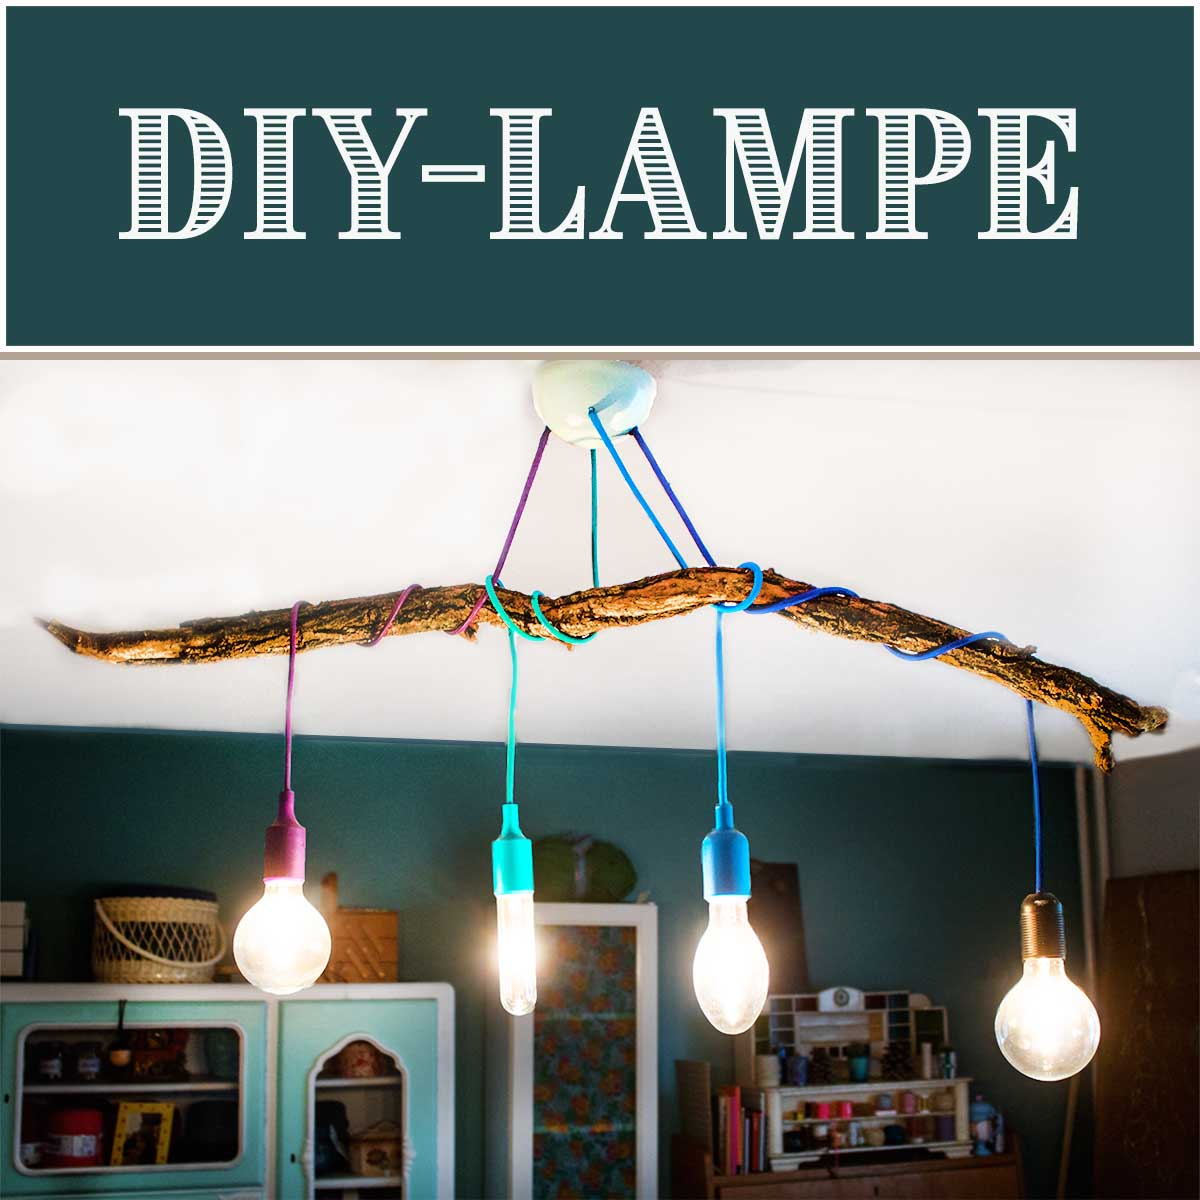 Do It Yourself Lampen Diy Lampe And Textilkabel Mit Ast Selber Bauen Anleitungen